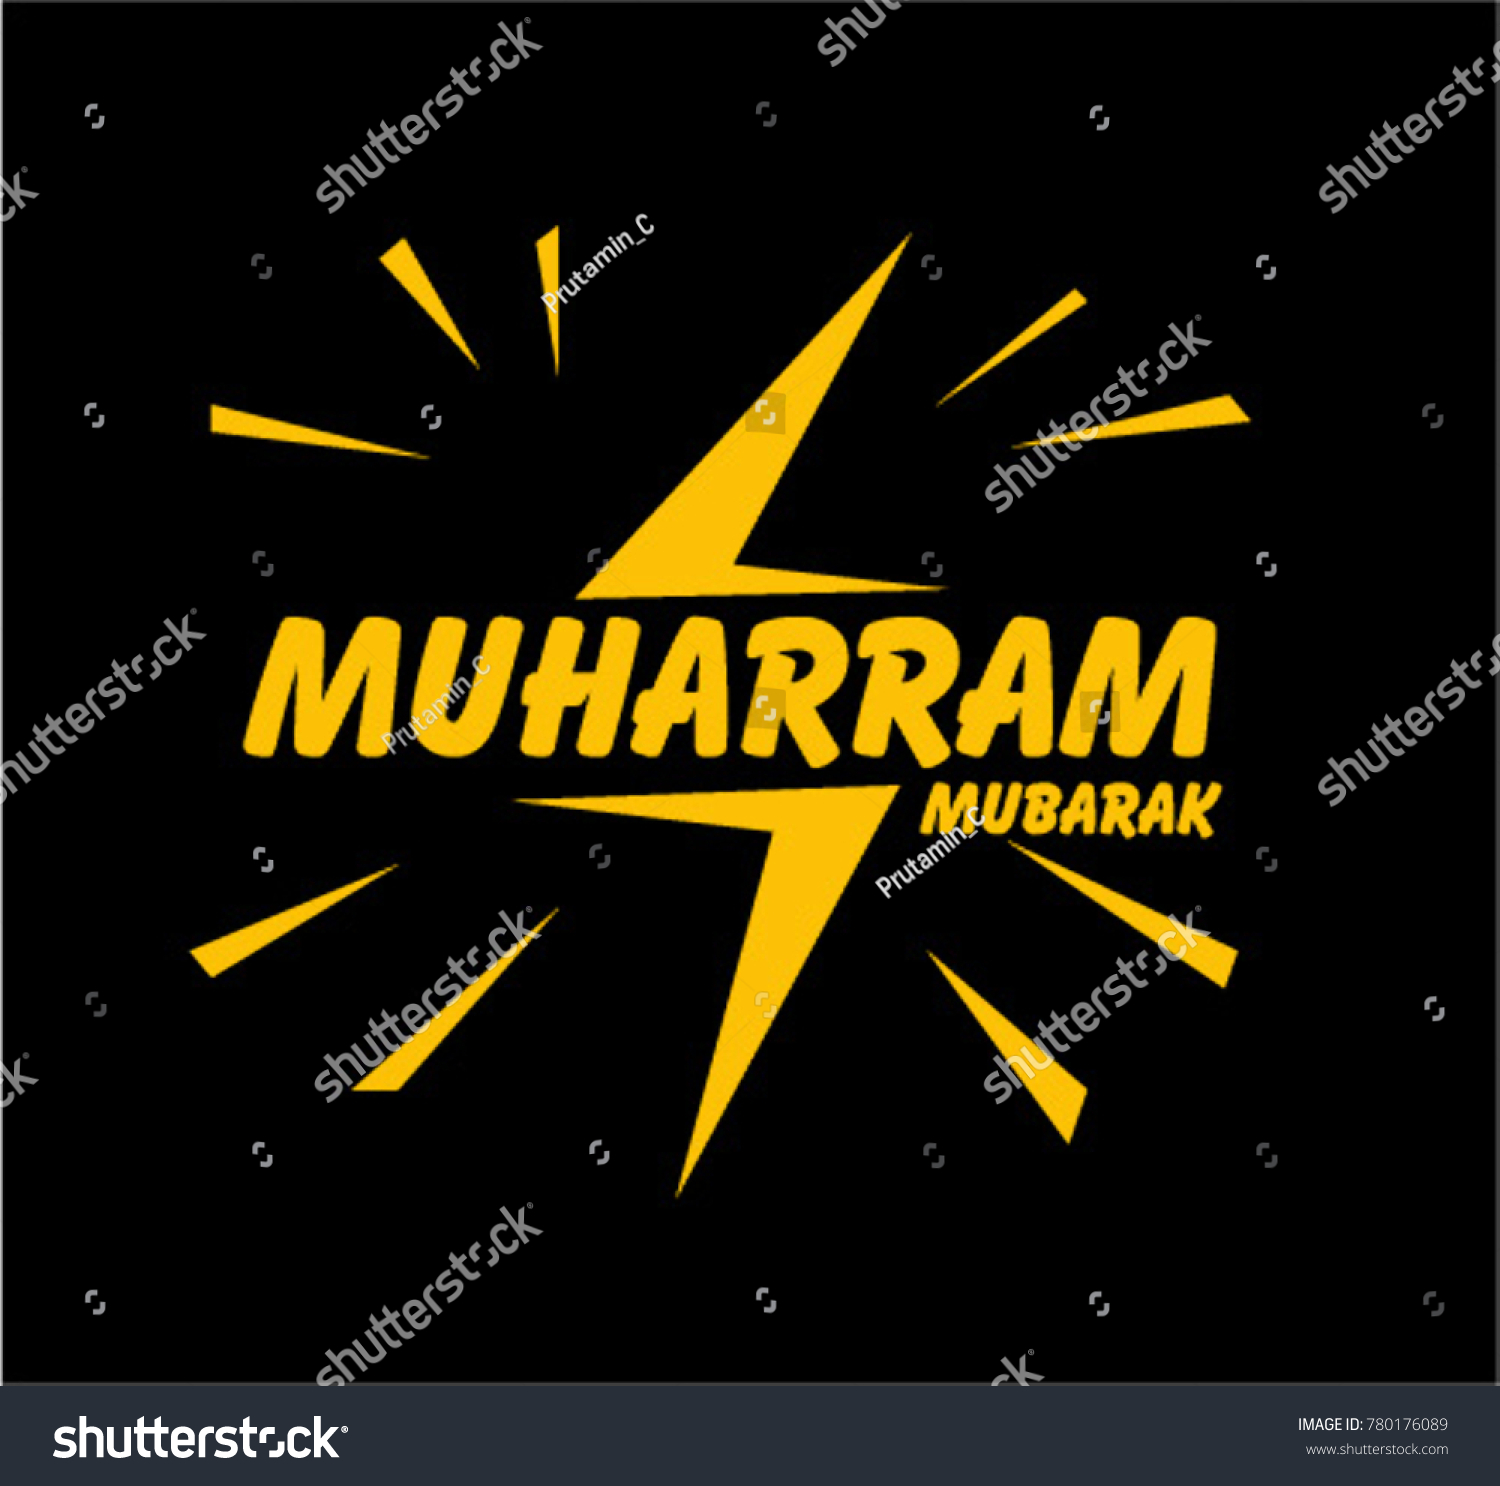 Muharram Mubarak Muslim New Year Event Stock Vector Royalty Free